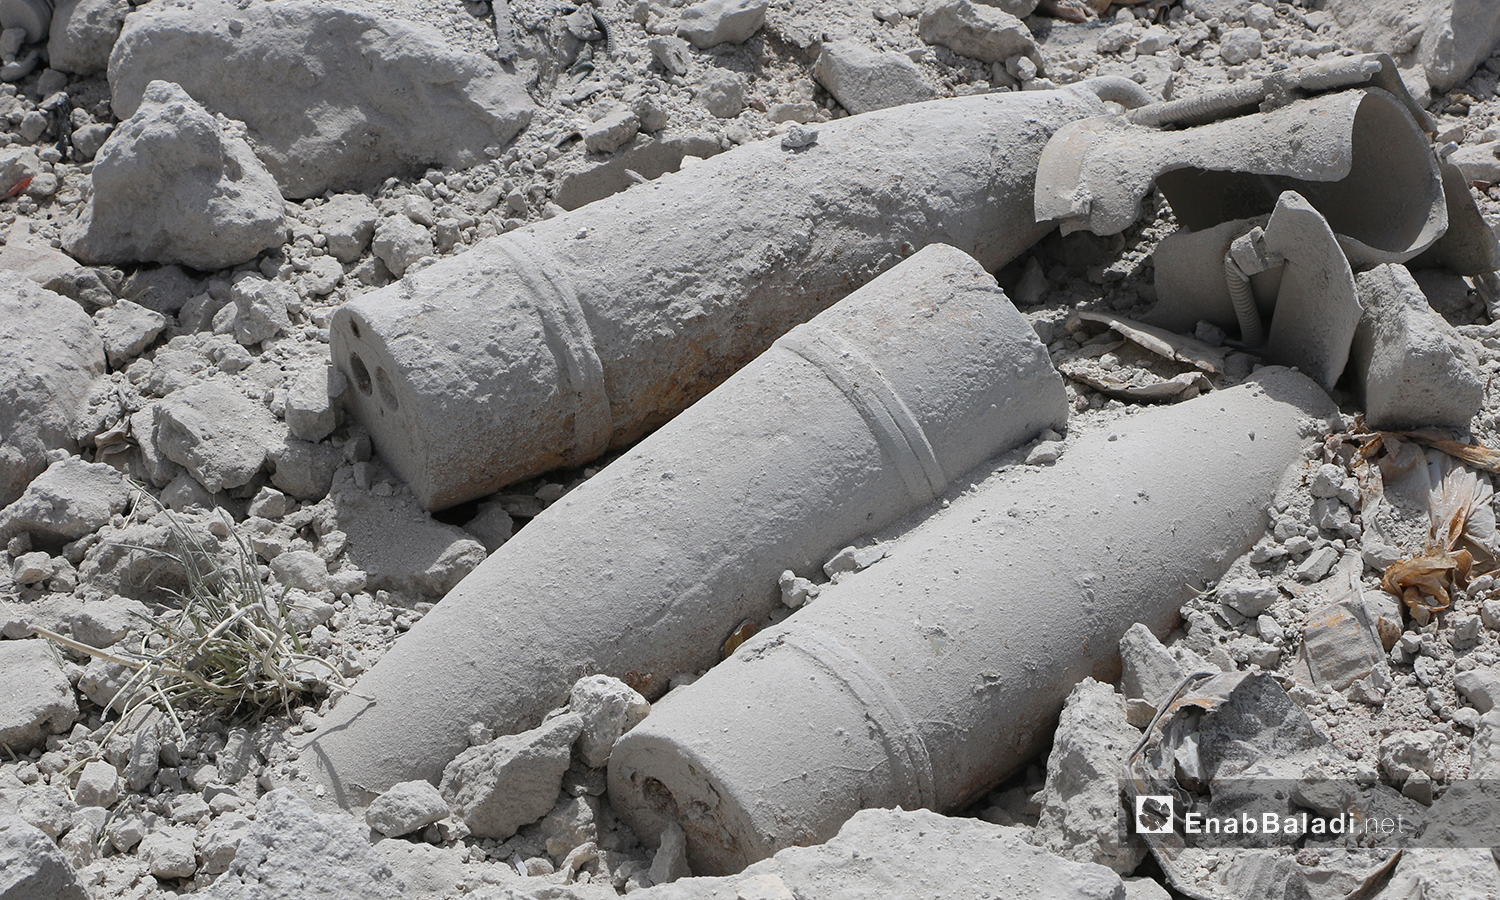 Remnants of artillery shells in the weapons warehouse blast site - 03 May 2021 (Anas al-Khouli / Enab Baladi)